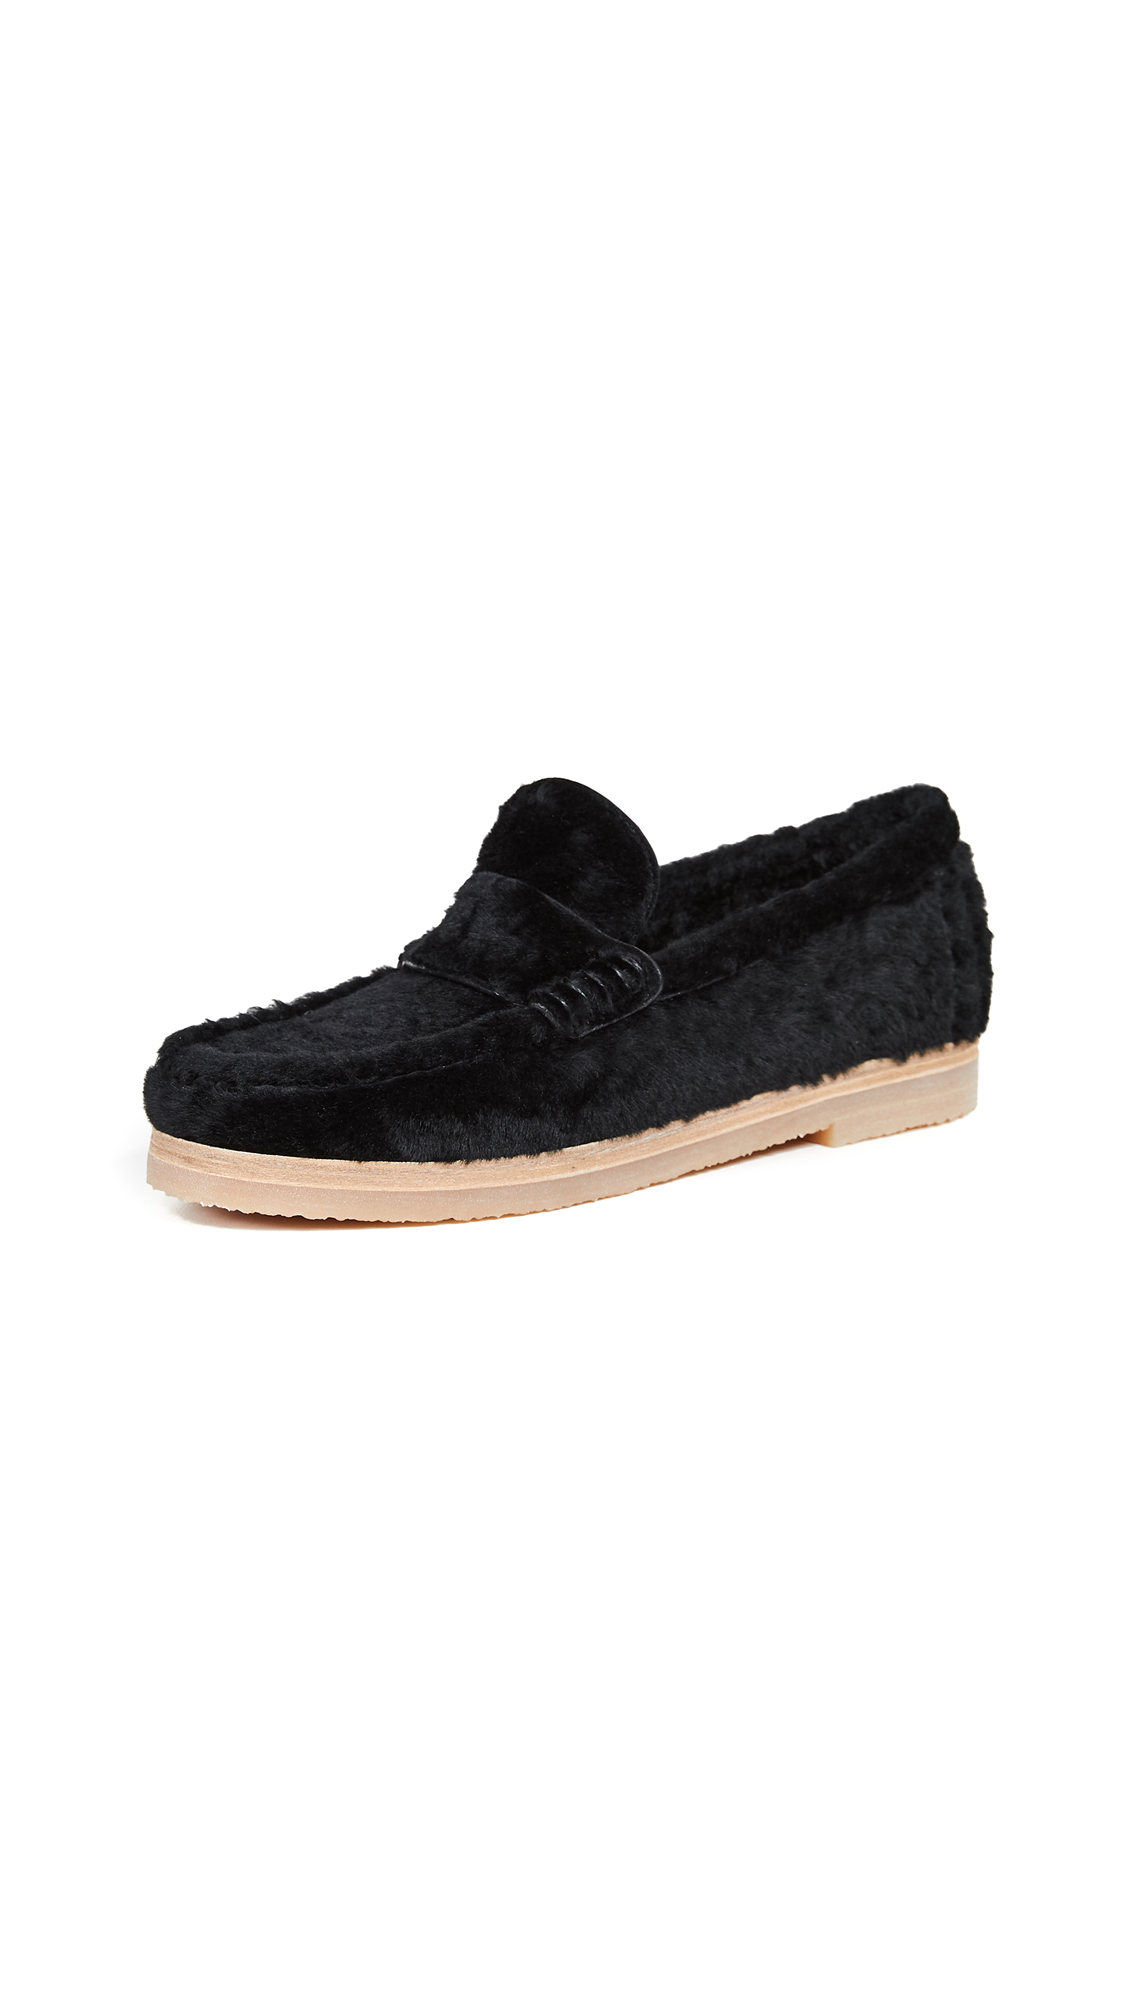 Stuart Weitzman Bromley Loafers - Black